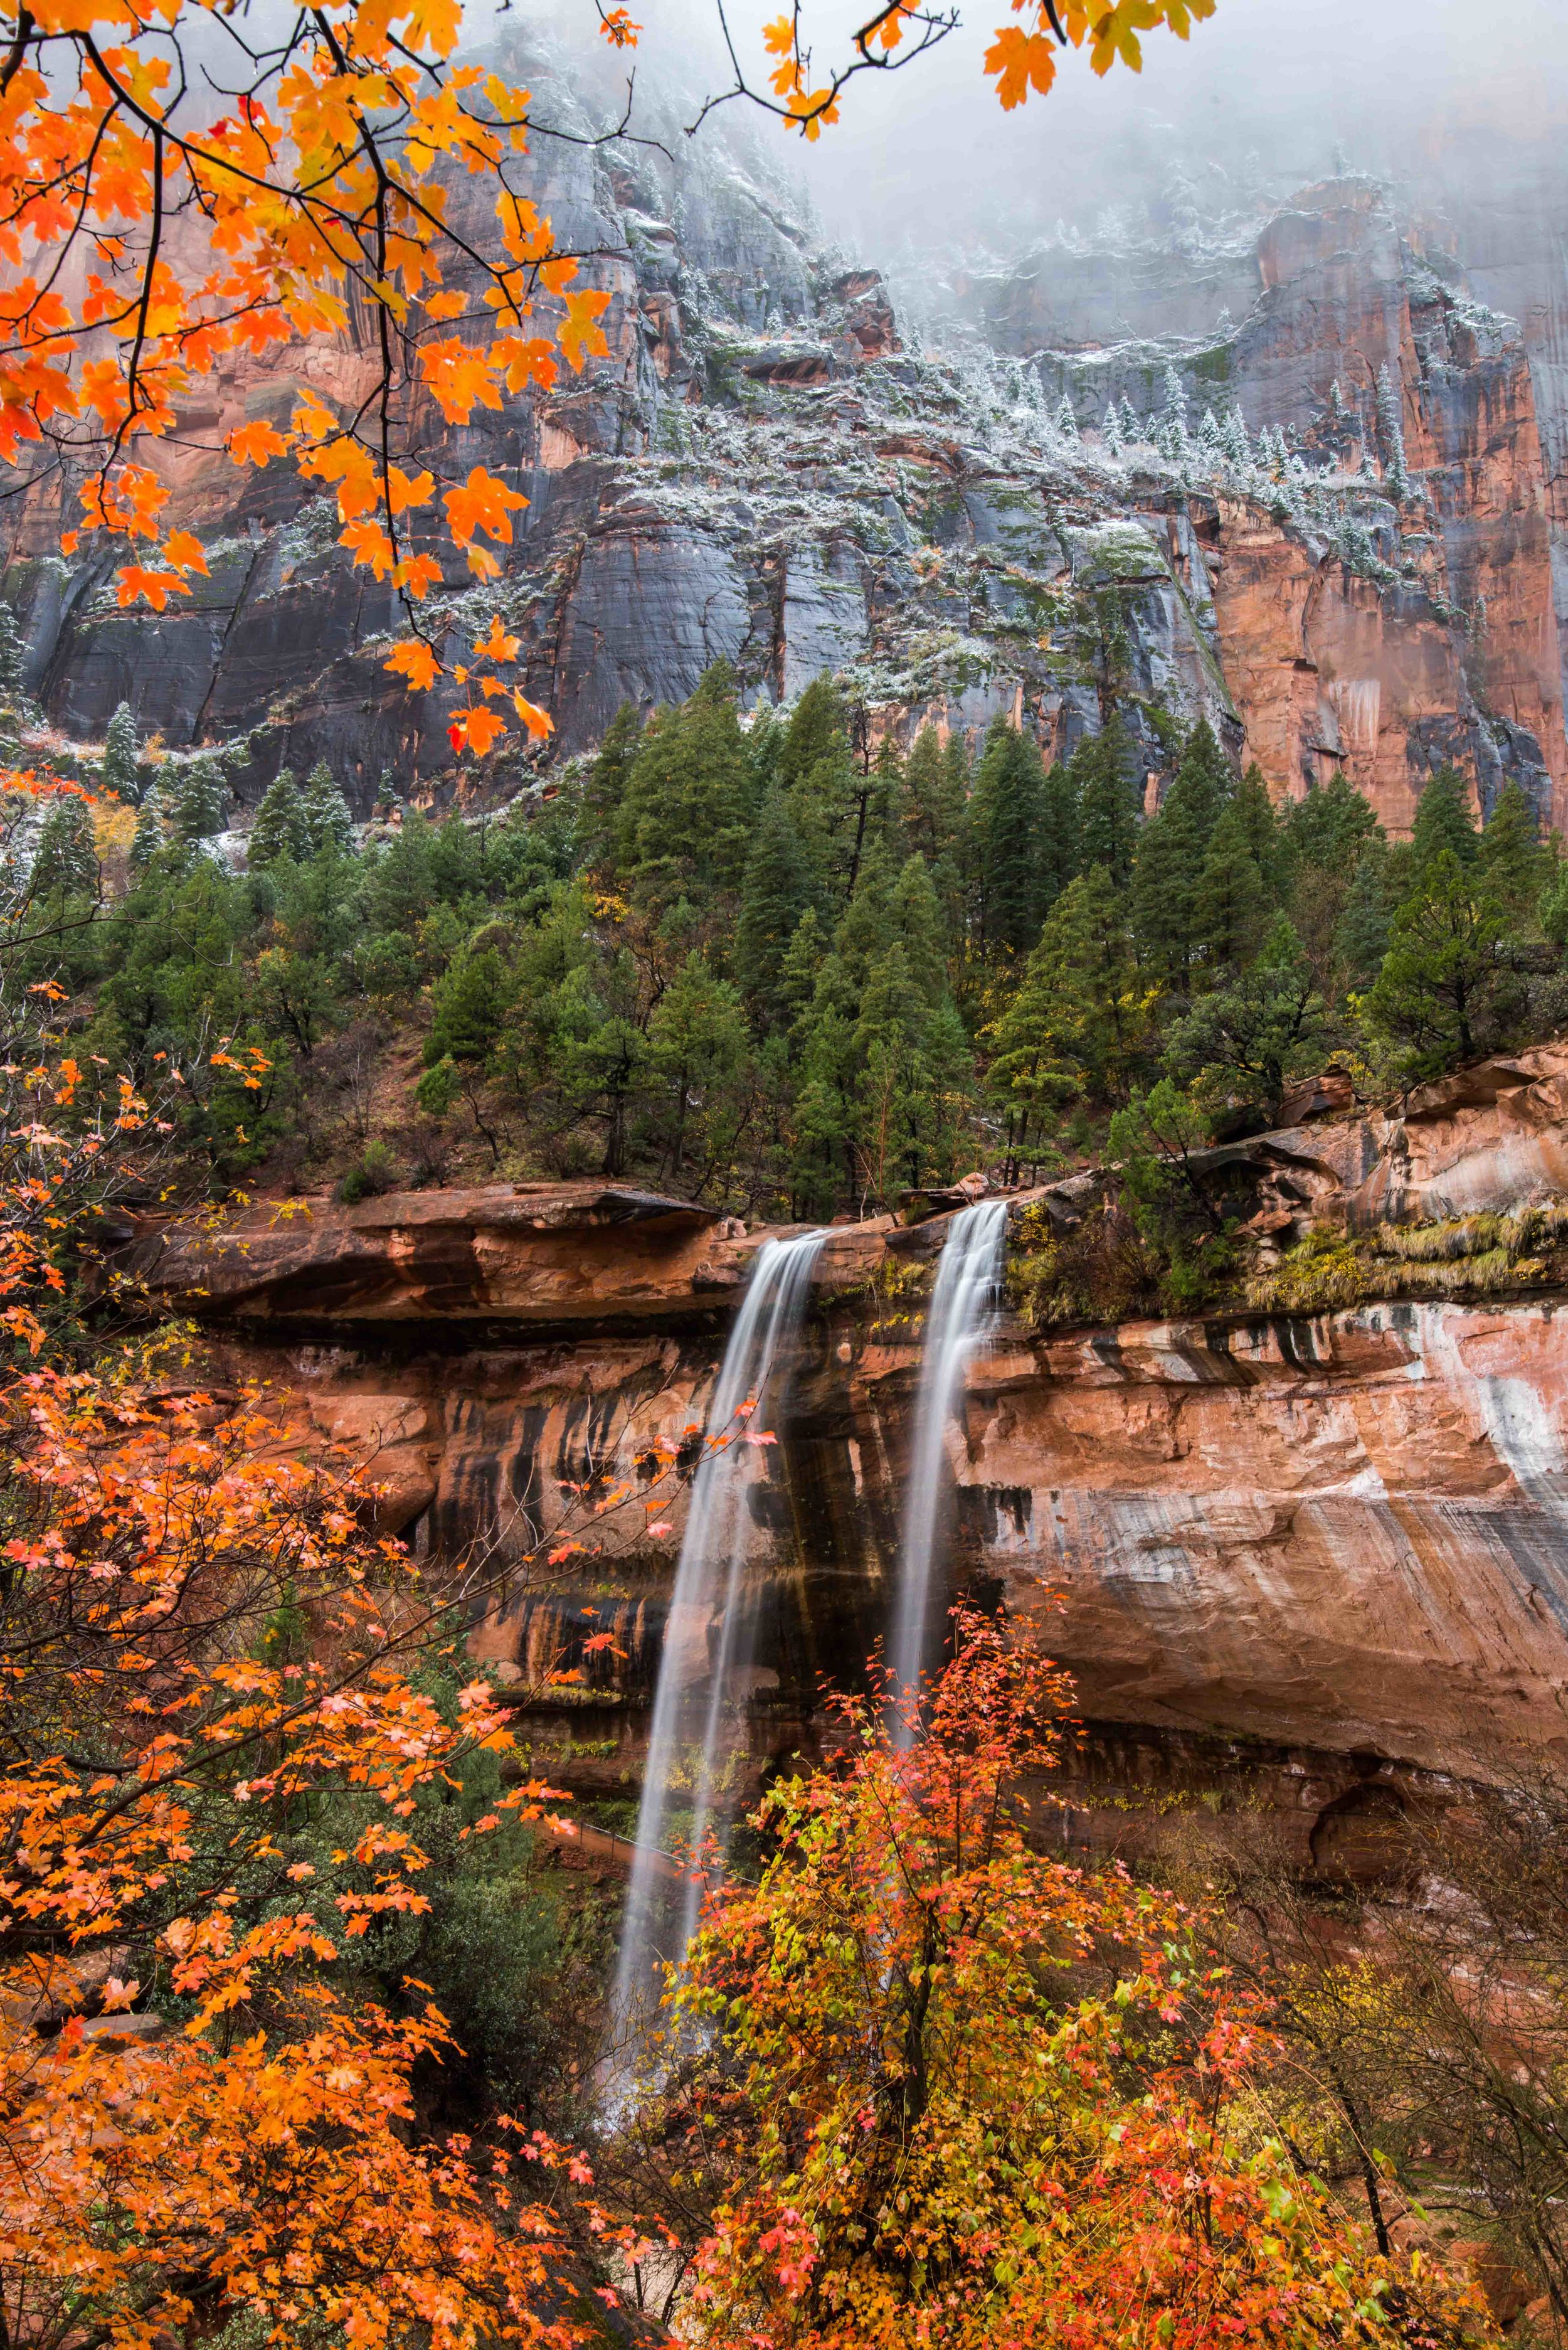 Emerald Pools in Zion during Autumn